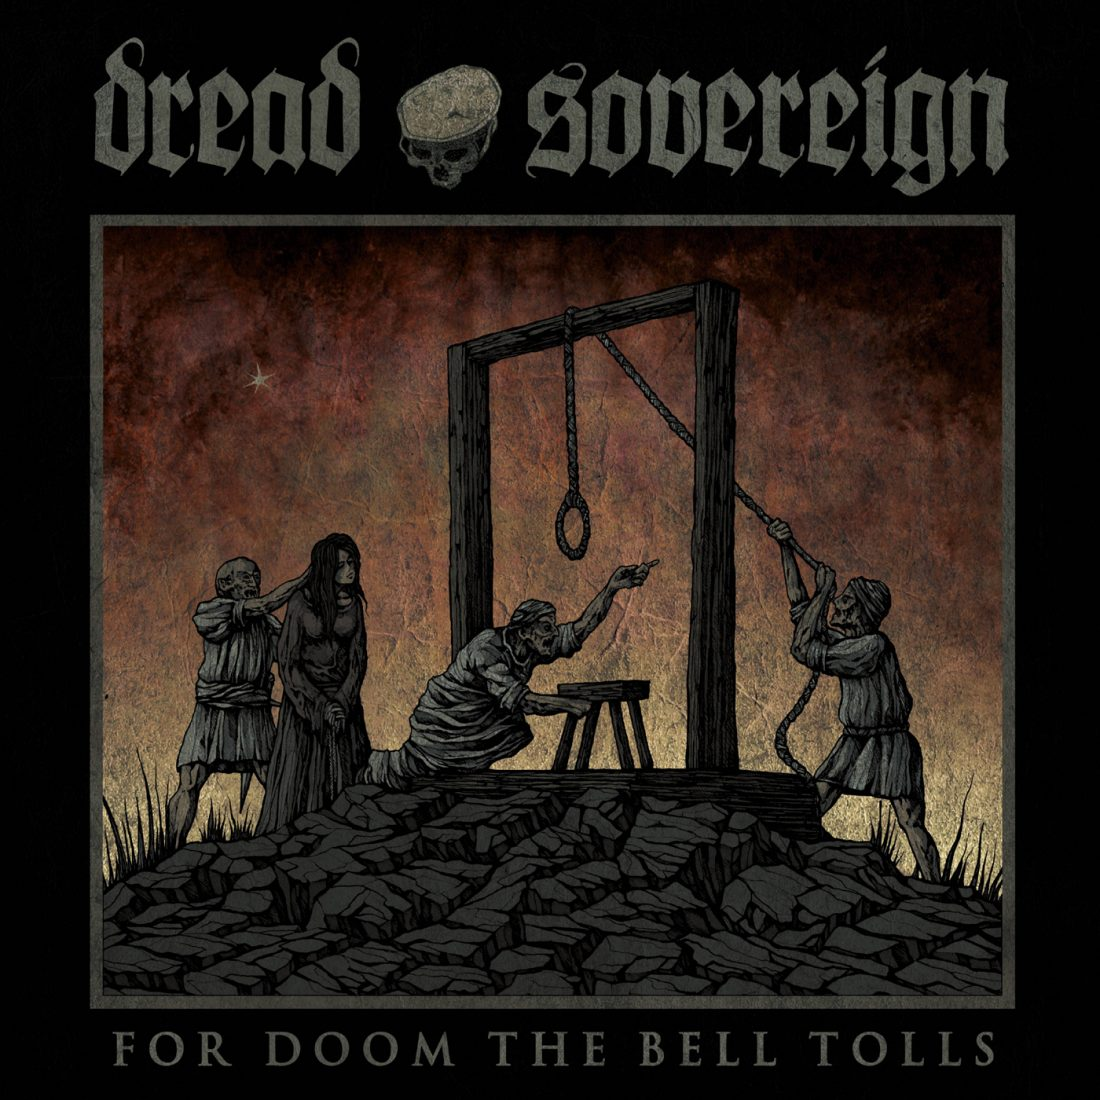 dread_sovereign_for_doom_the_bell_tolls